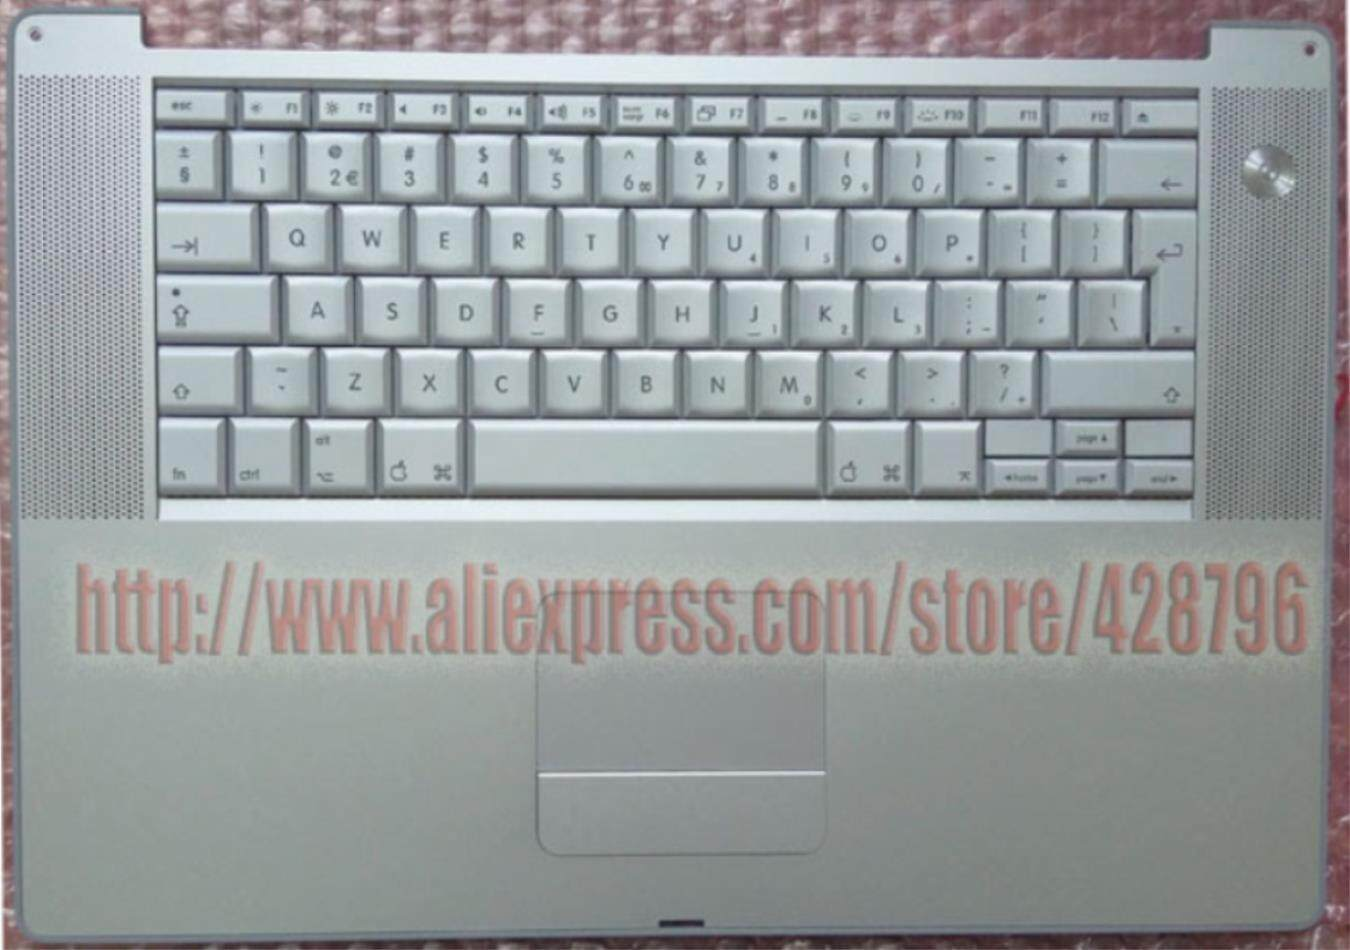 613-4697-c -bpowerbook G4 Keyboard Trackpad 15 A1046 1ghz/1.25 Ghz (m8980m8981)1.33ghz/1.5ghz A1095(m9421 M9422) Brand New! Malaysia